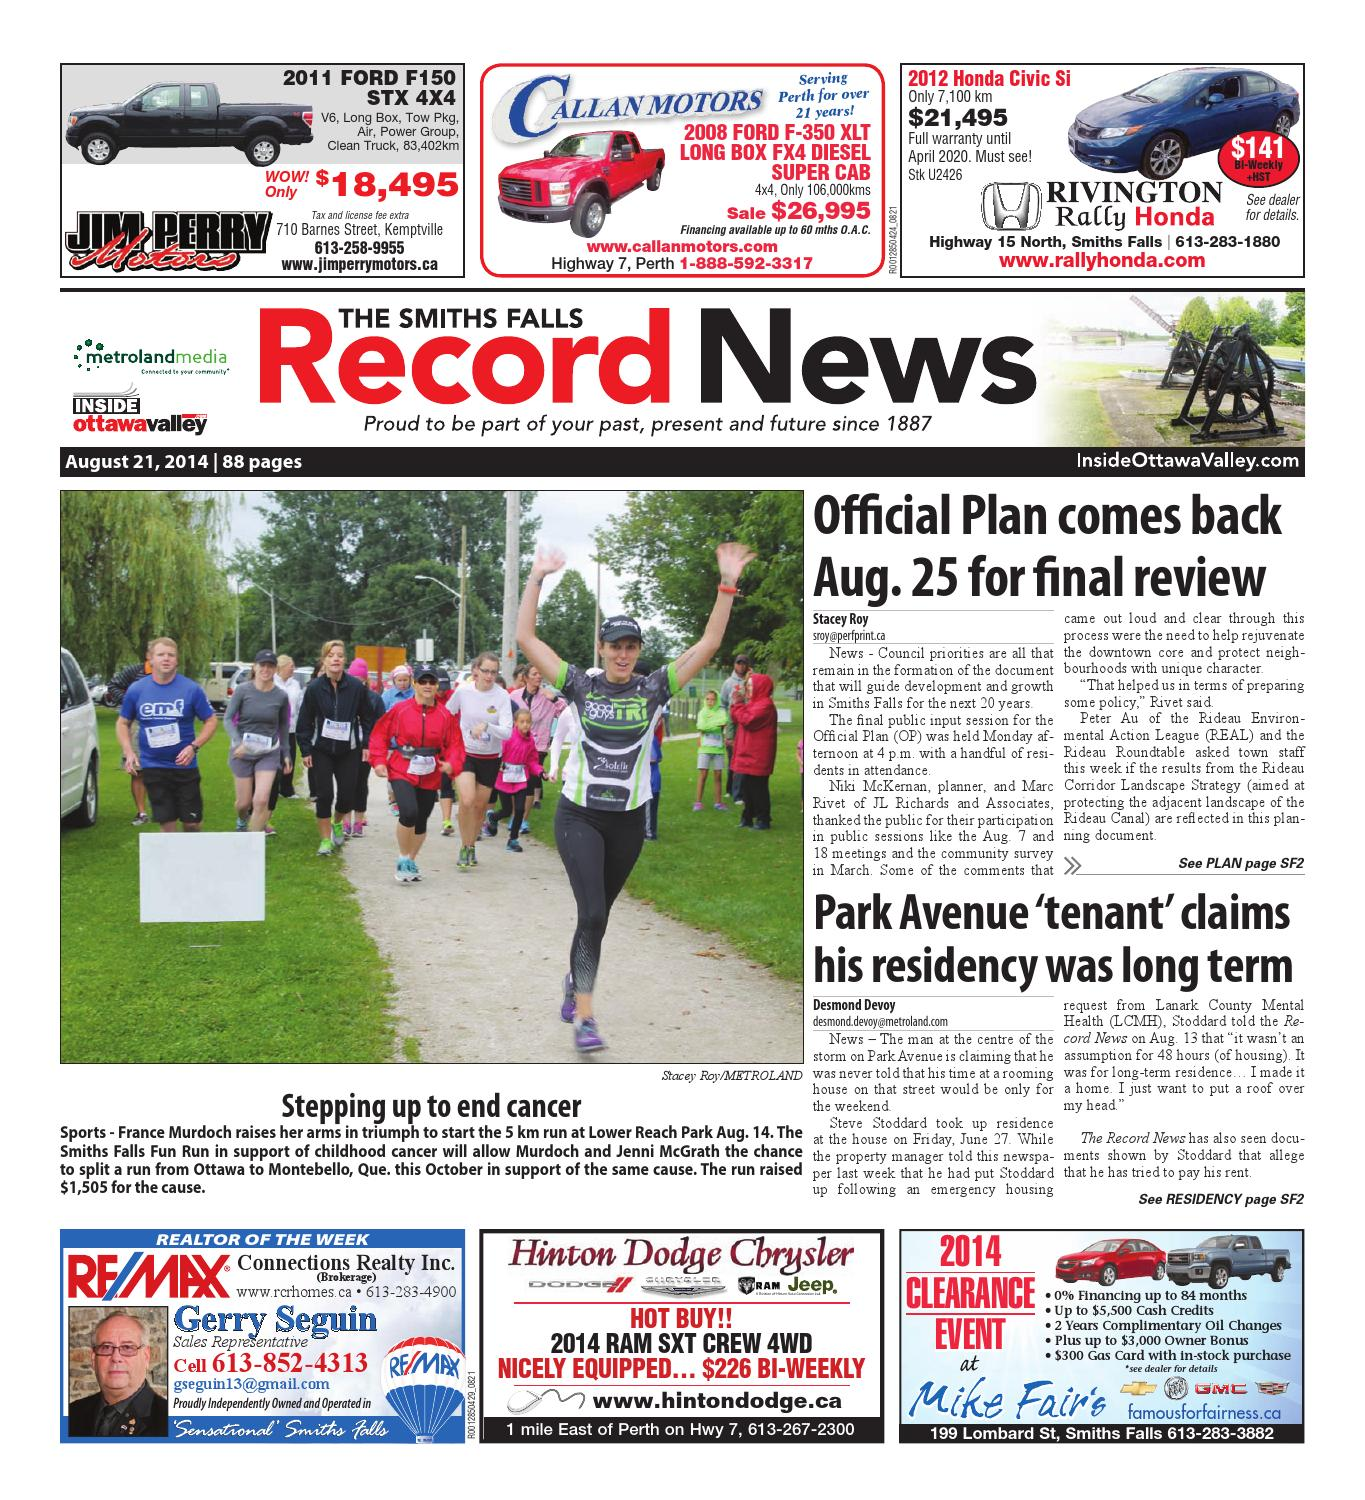 Smithsfalls082114 2 By Metroland East Smiths Falls Record News Issuu Published2011 9 28 43300 Authorrebekka Keyword Four Way Remote